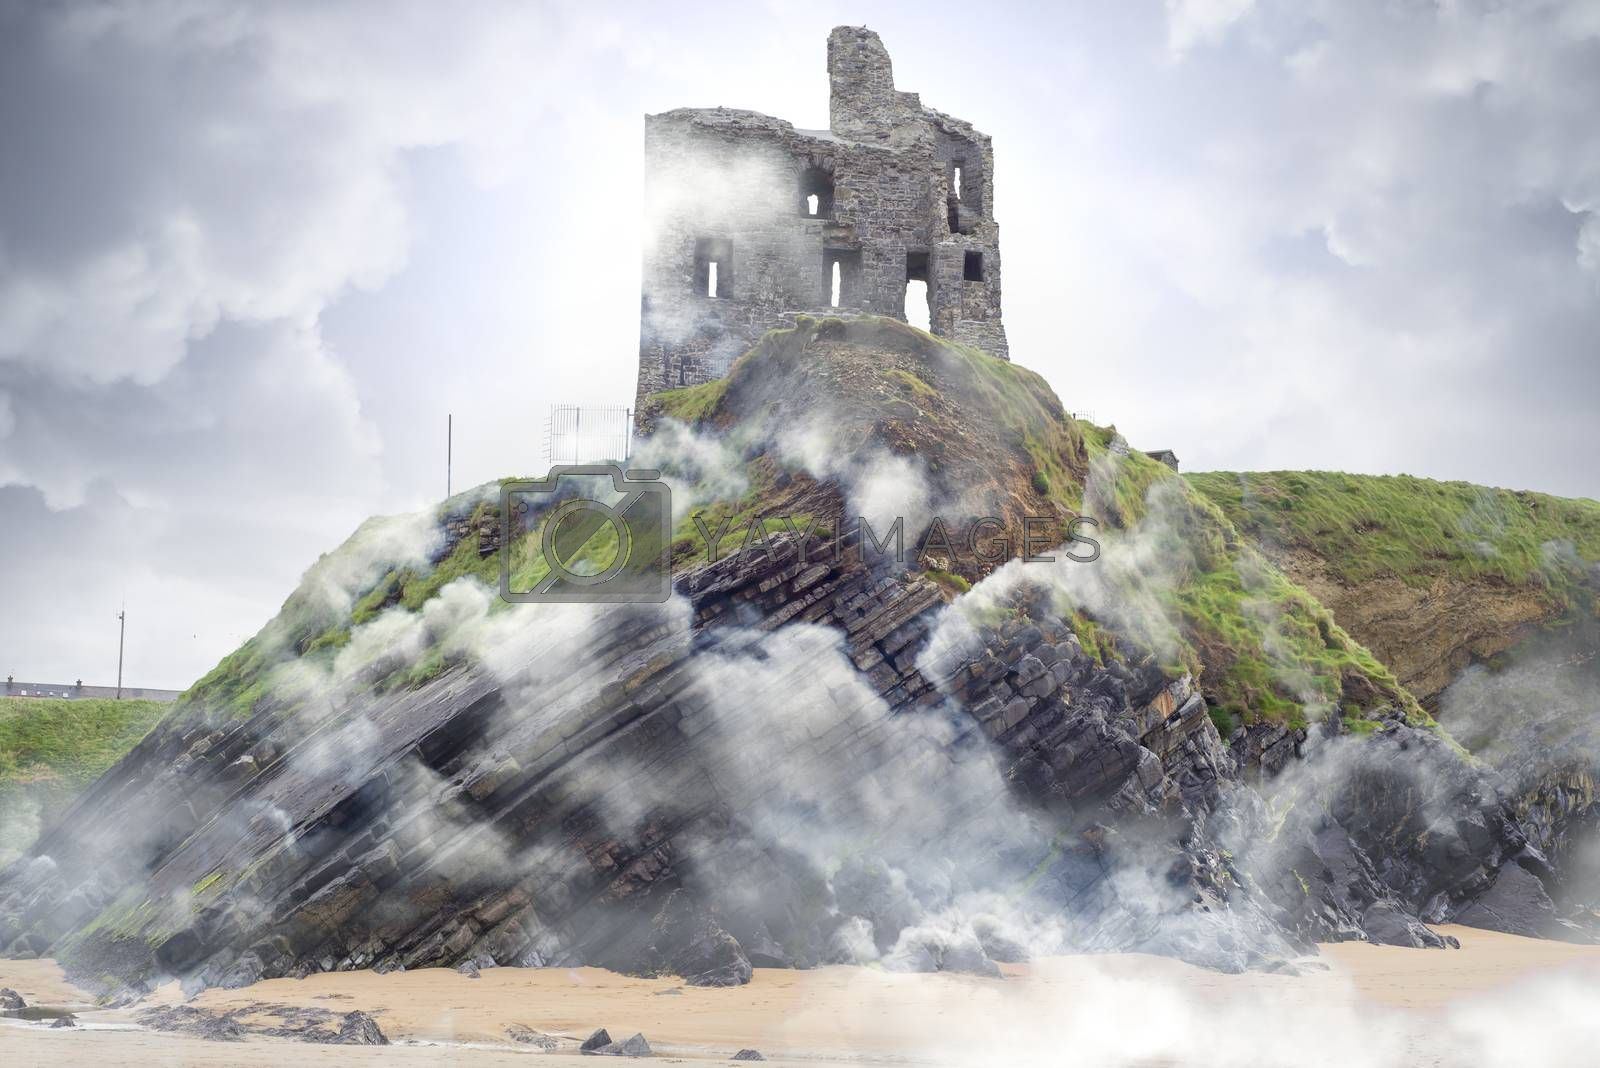 Ballybunion castle ruins on cliff top in foggy mist